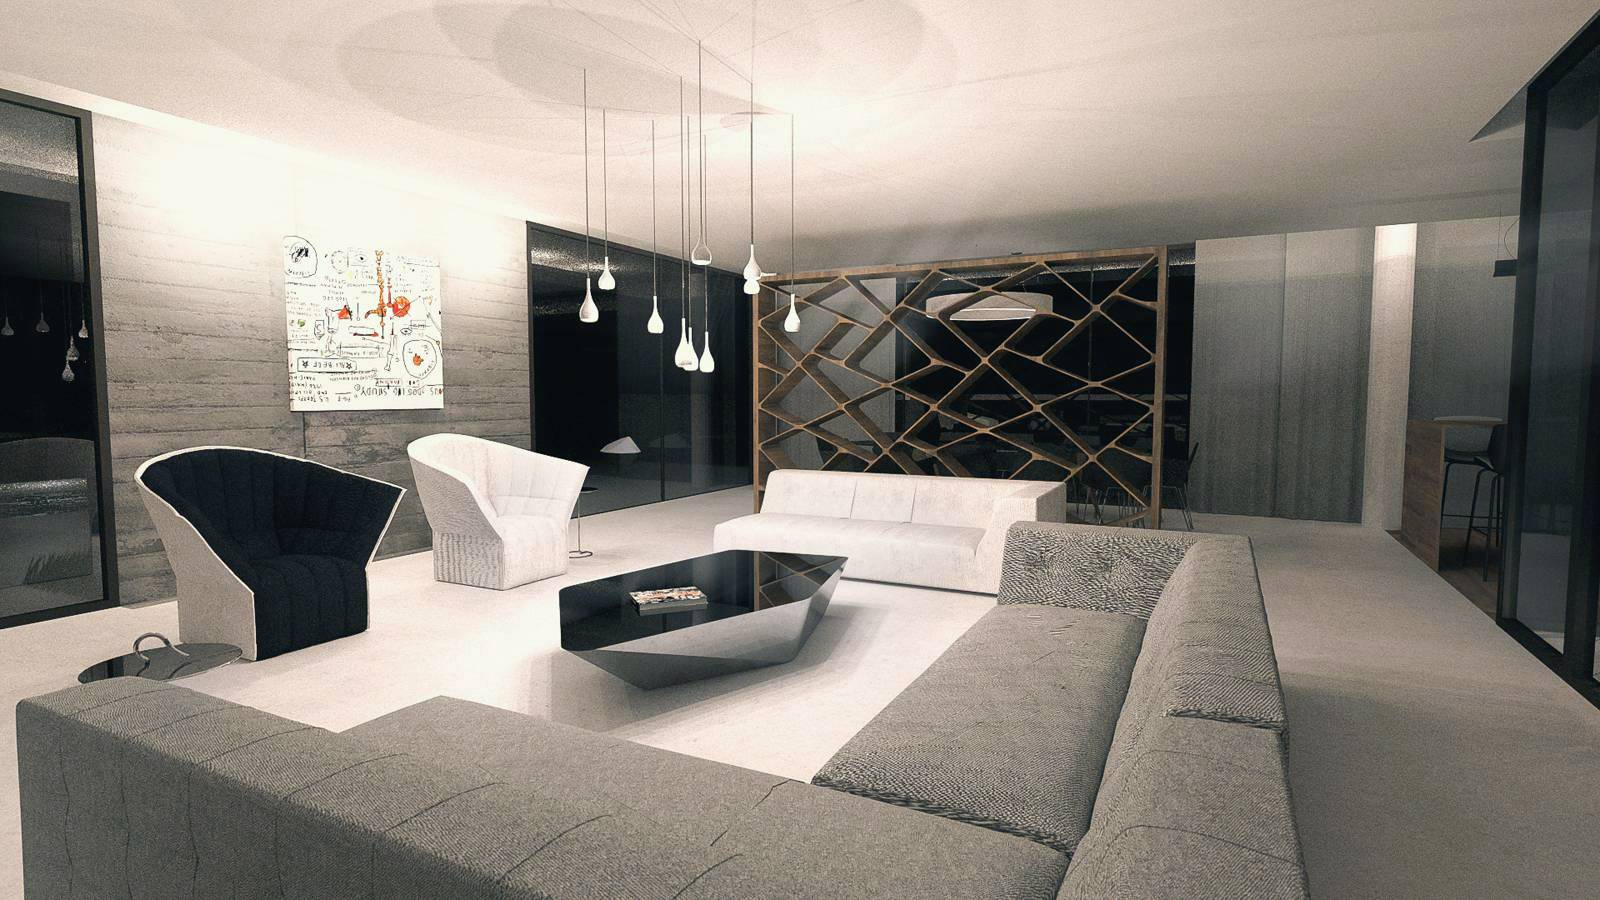 agencement int rieur de la maison contemporaine l limonest dans le rh ne architecte a2 sb. Black Bedroom Furniture Sets. Home Design Ideas